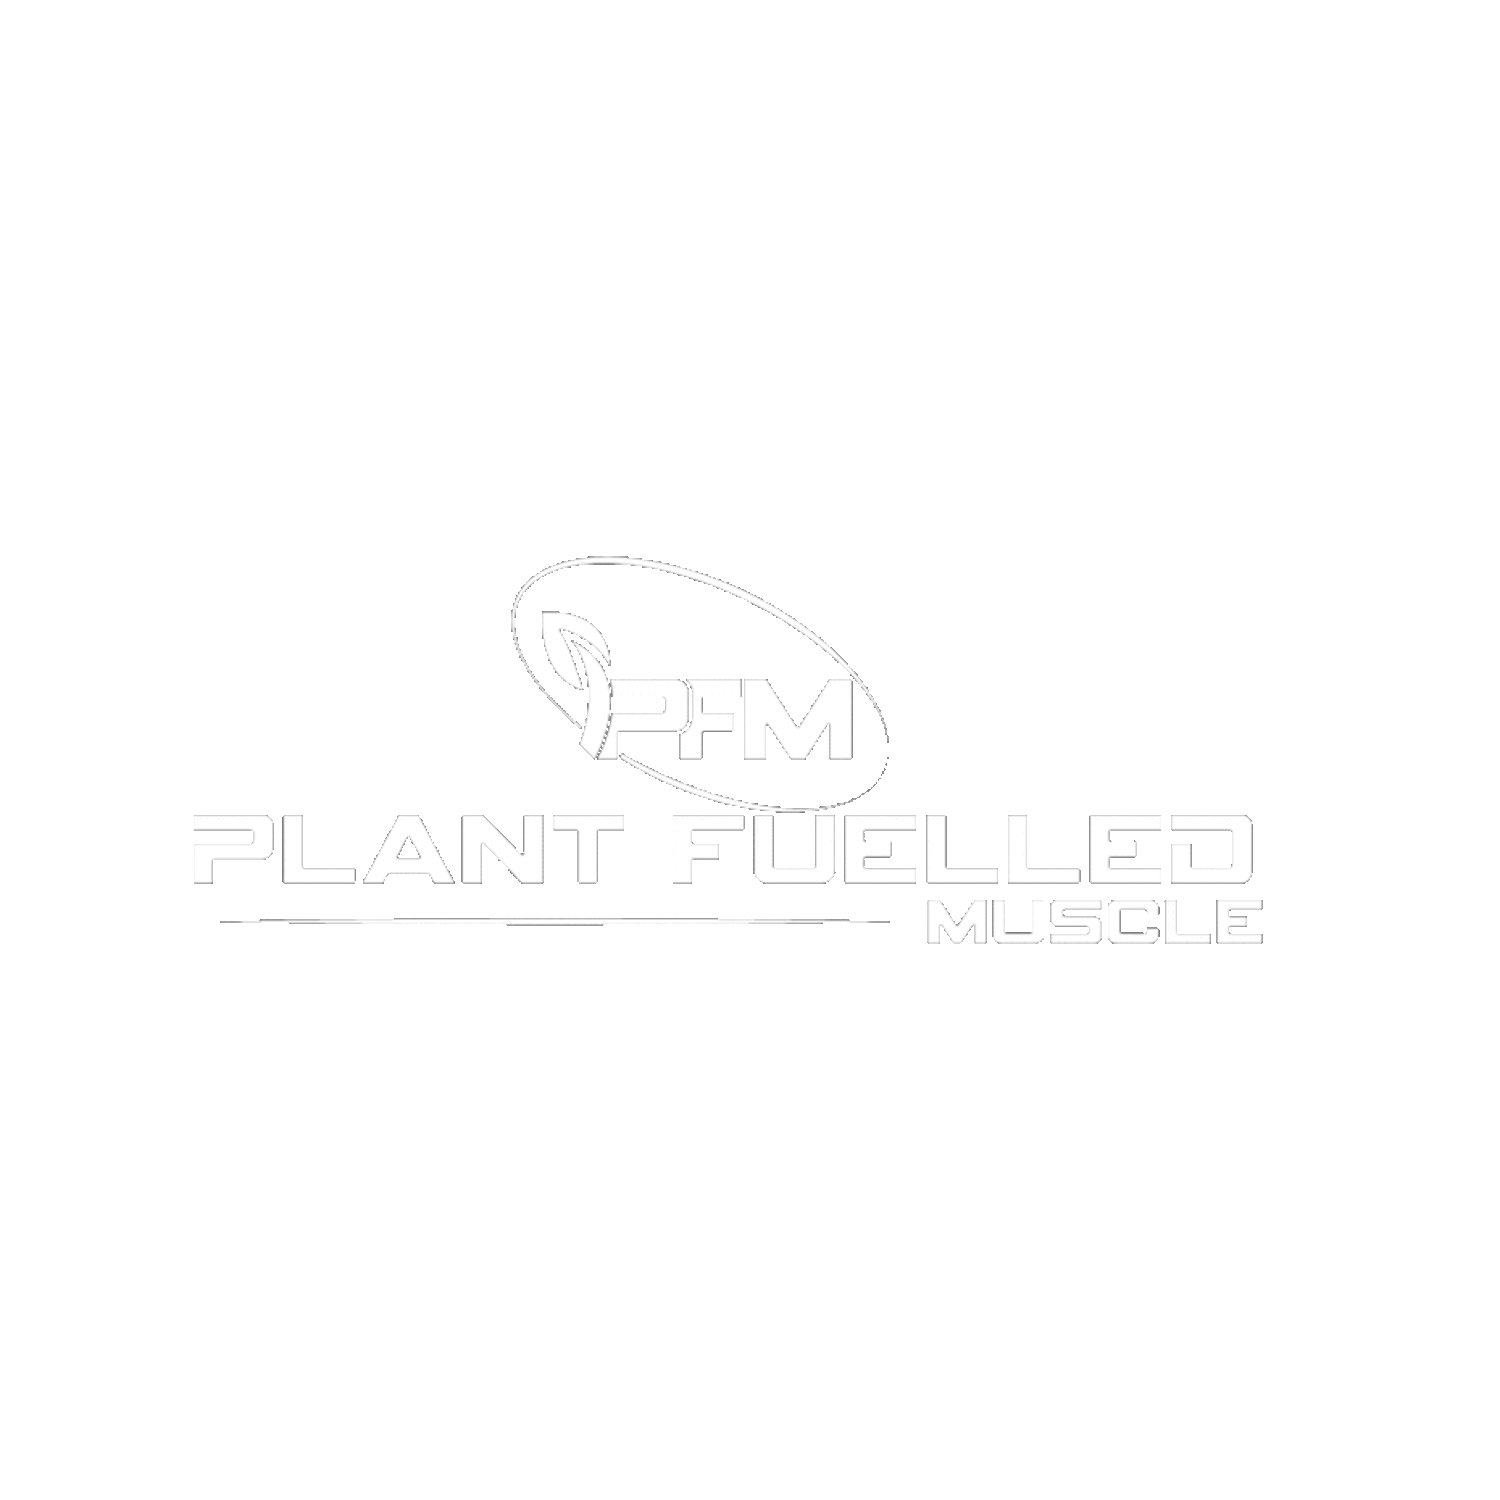 Plant Fuelled Muscle